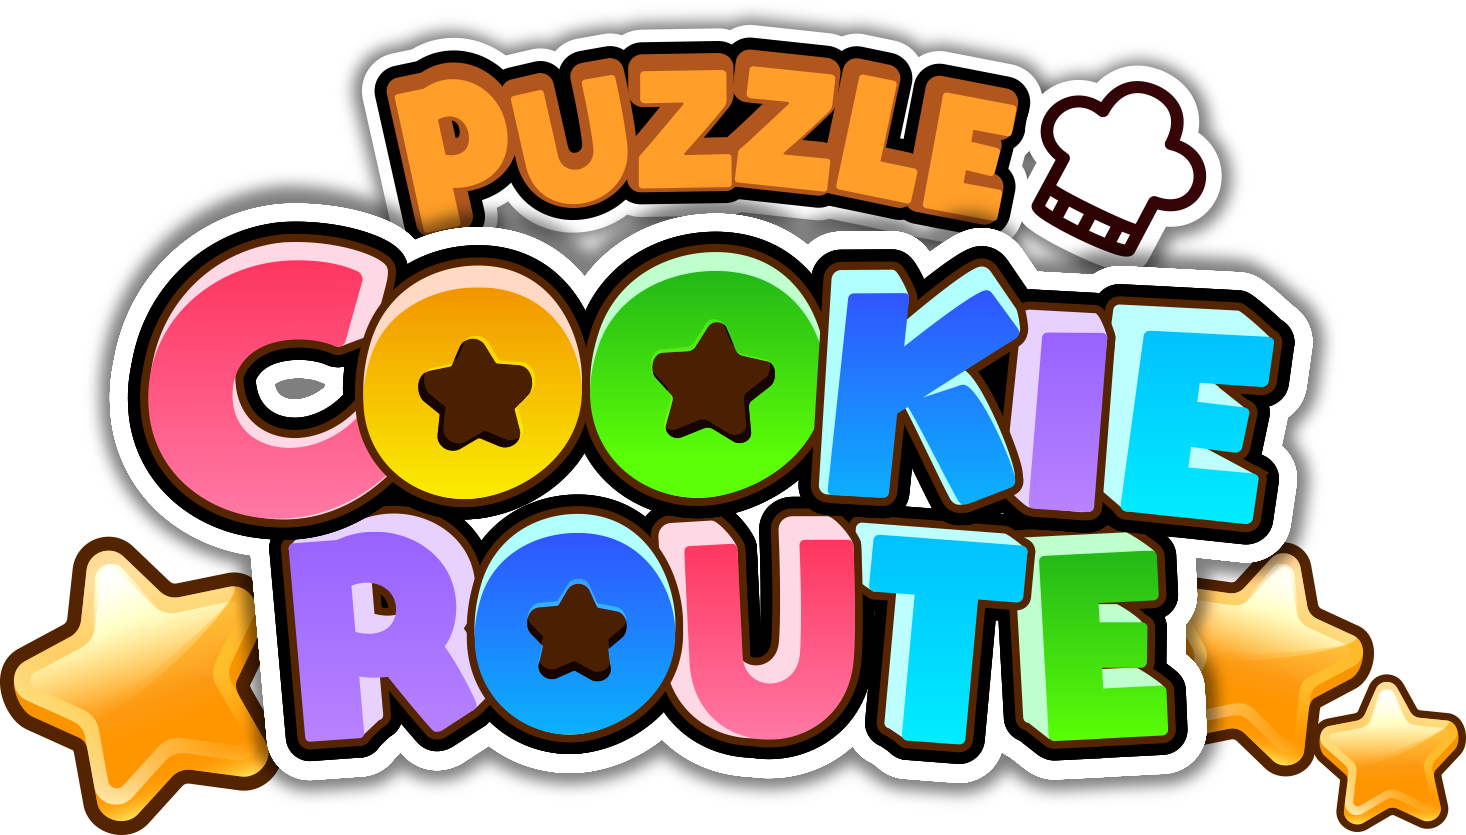 CookieRoute